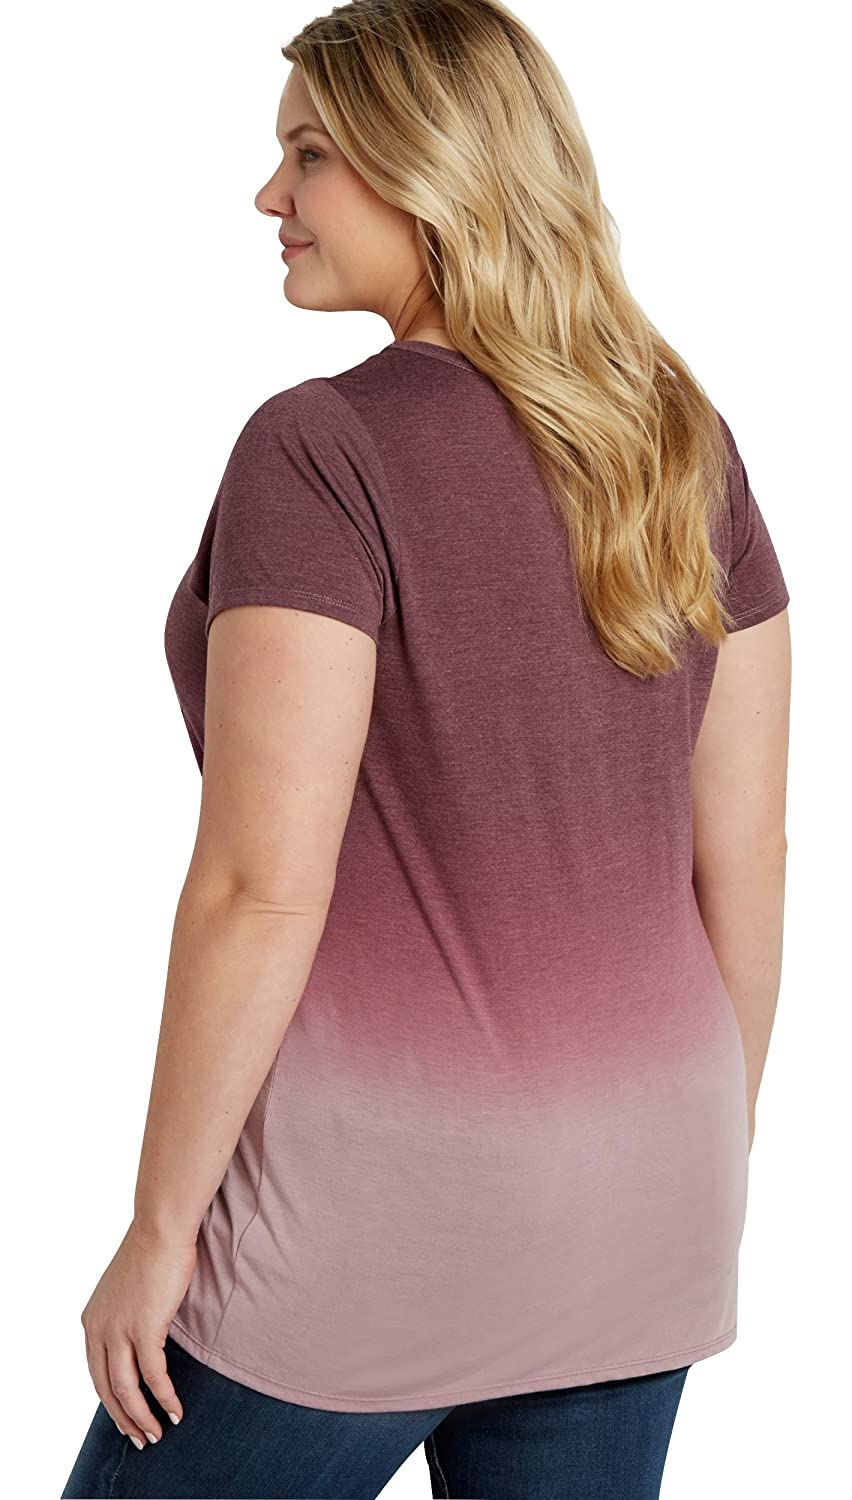 Maurices Women's Plus Size Ombre Tee With Rock N' Roll In My Soul Graphic